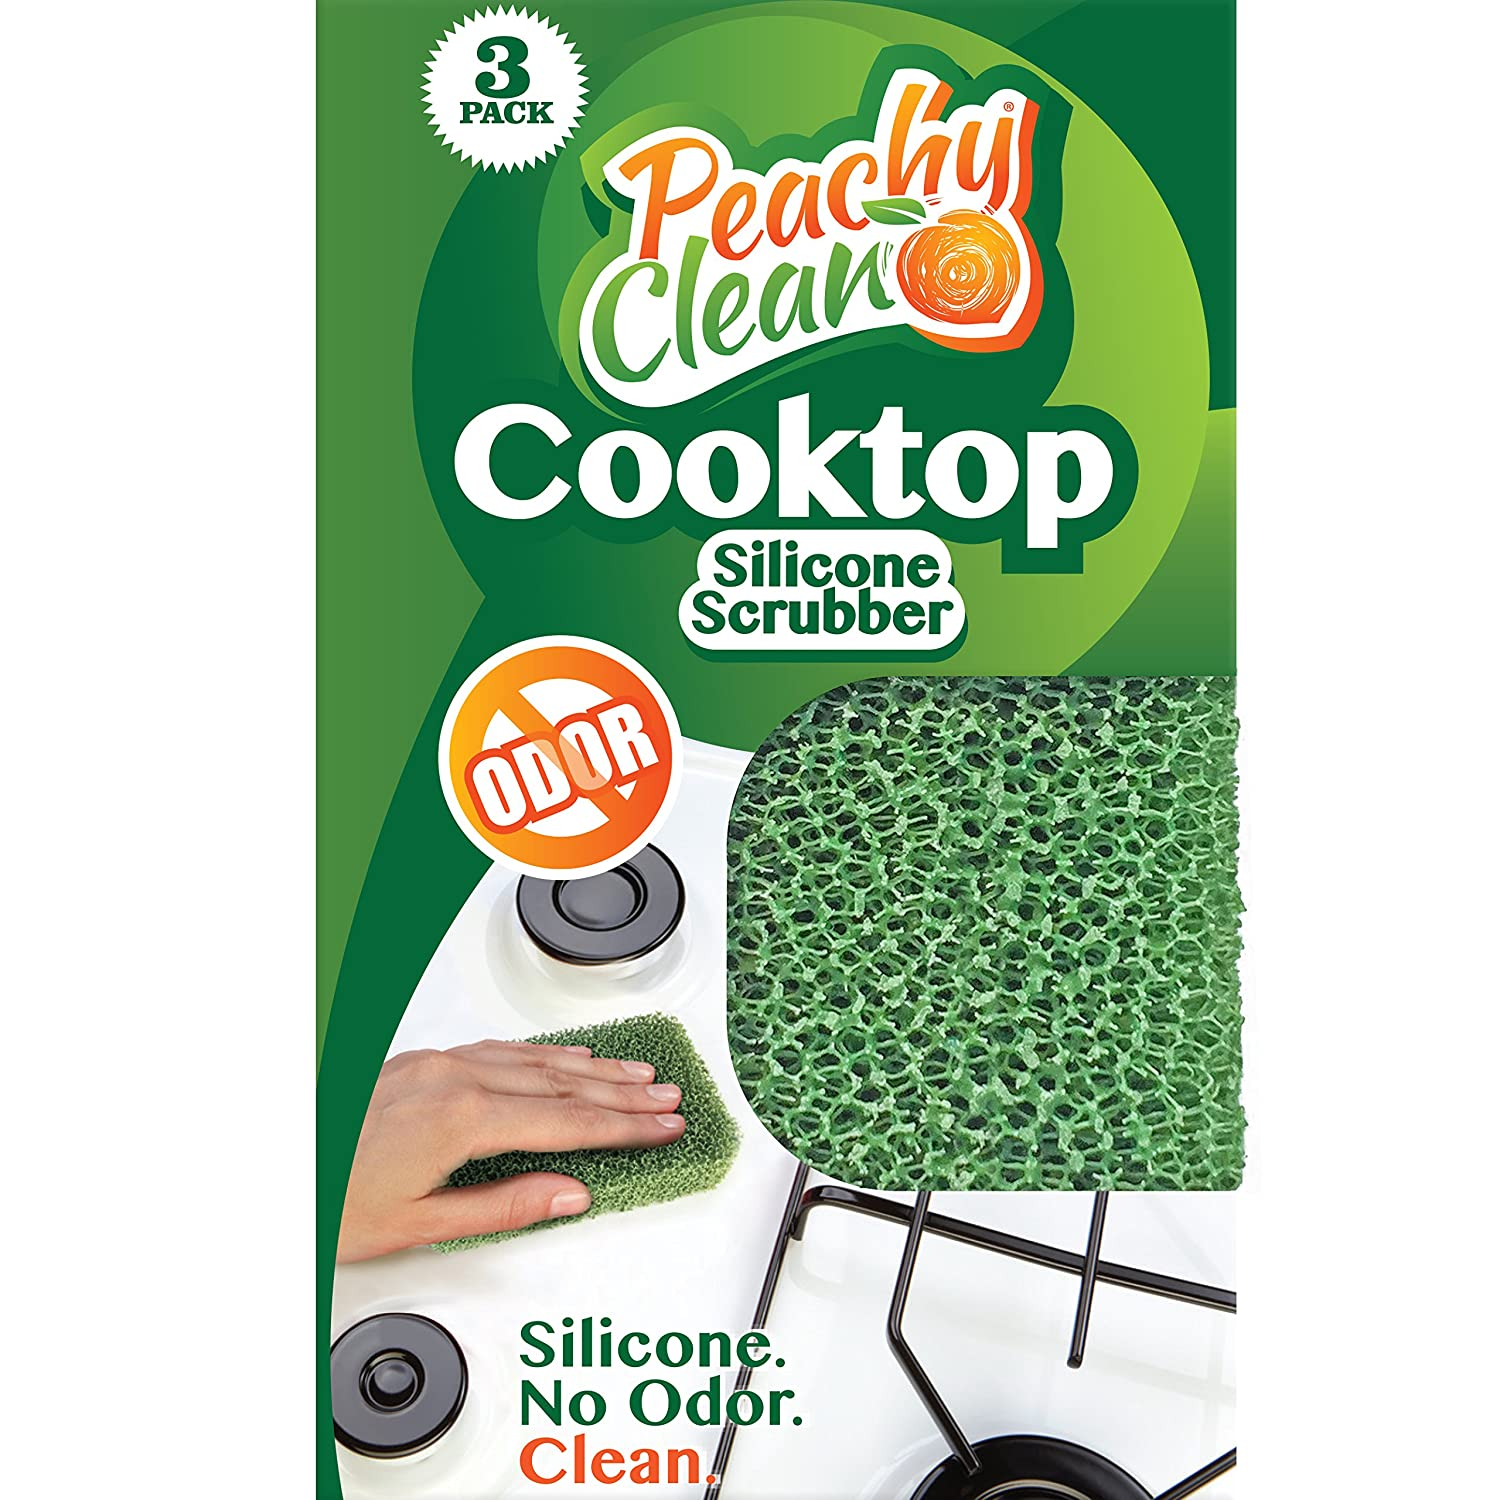 Amazon Antimicrobial Cooktop Cleaner Silicone Scrubber By